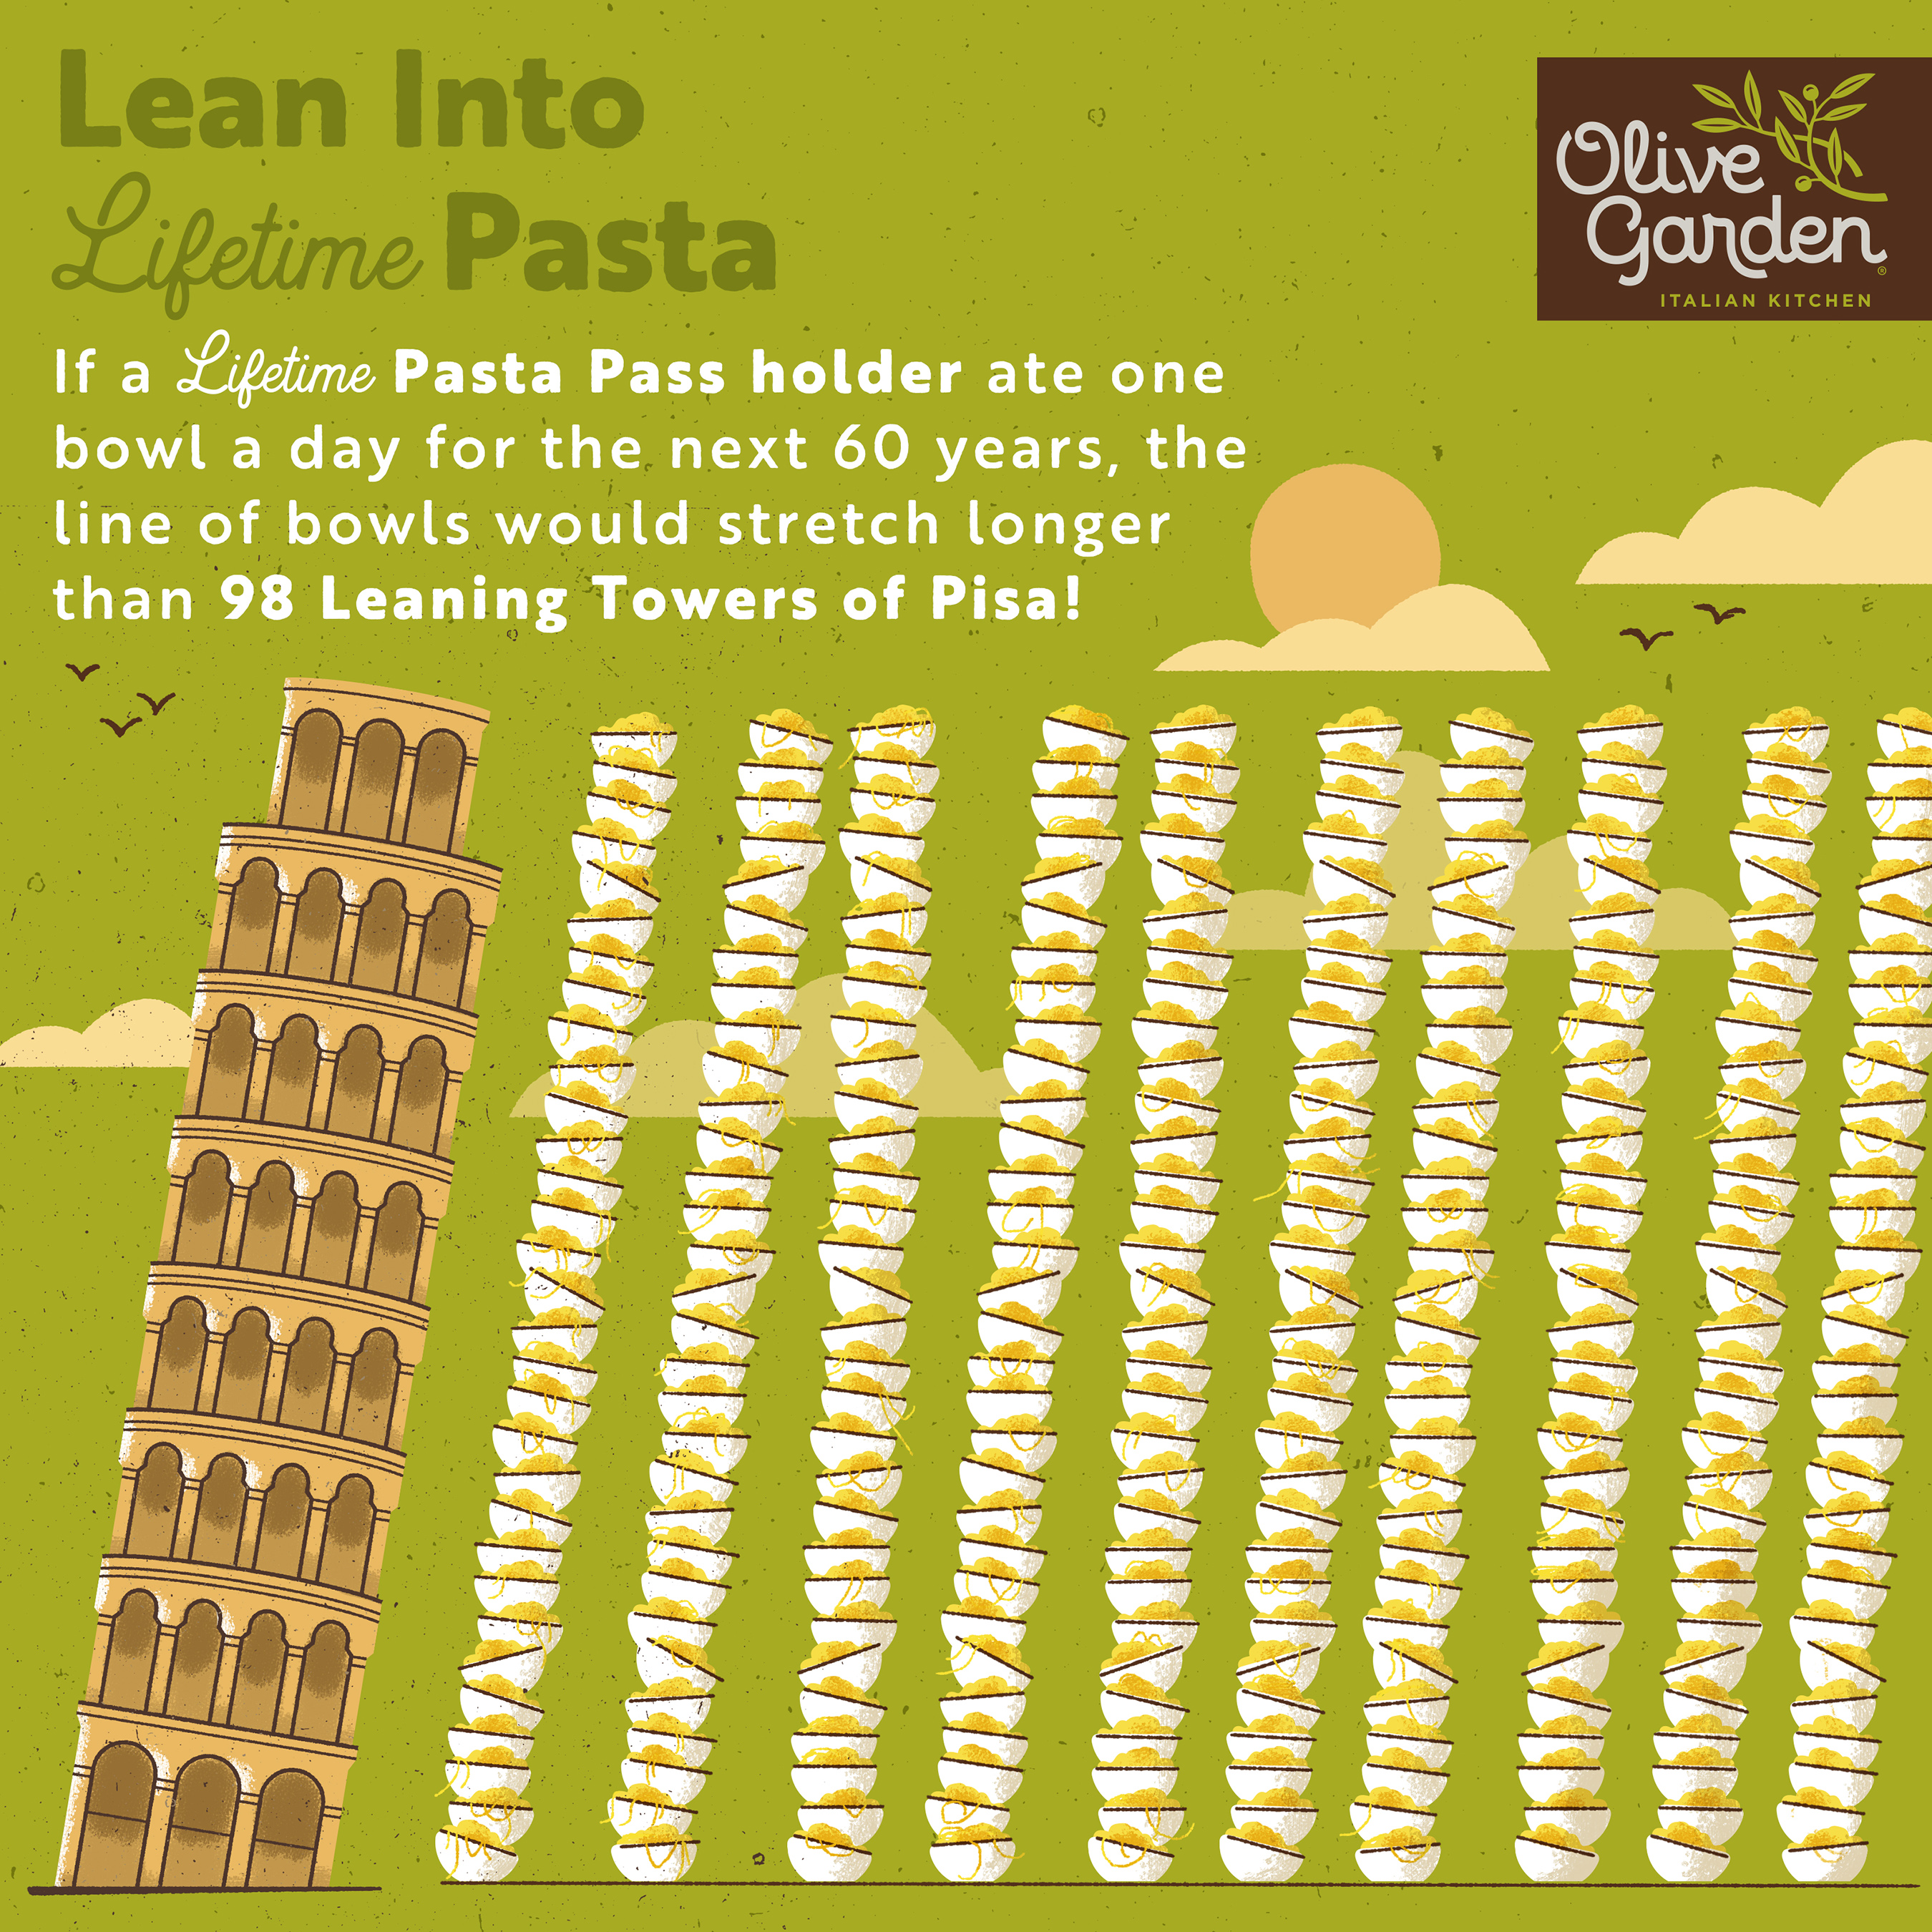 If an Olive Garden Lifetime Pasta Pass holder ate one bowl a day for the next 60 years, the line of bowls would stretch longer than 98 Leaning Towers of Pisa.